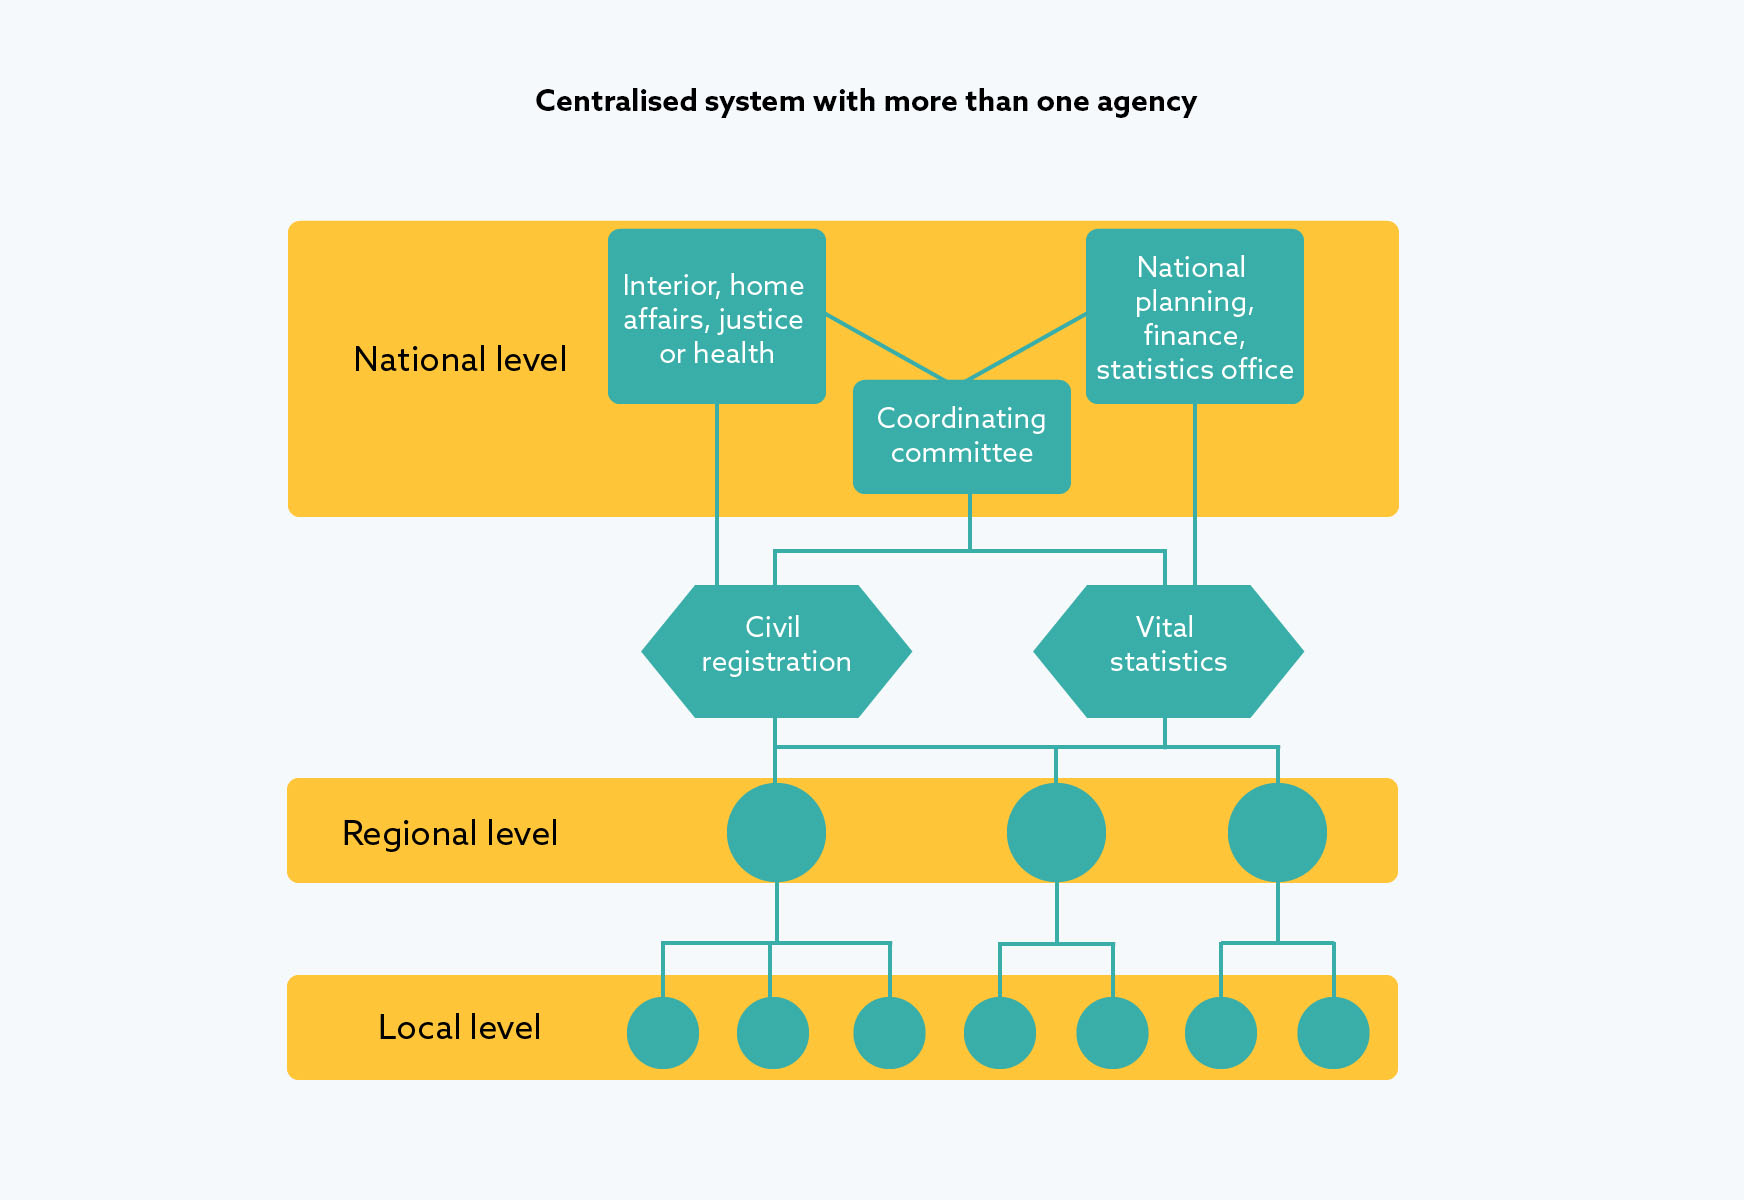 Centralised system with more than one agency